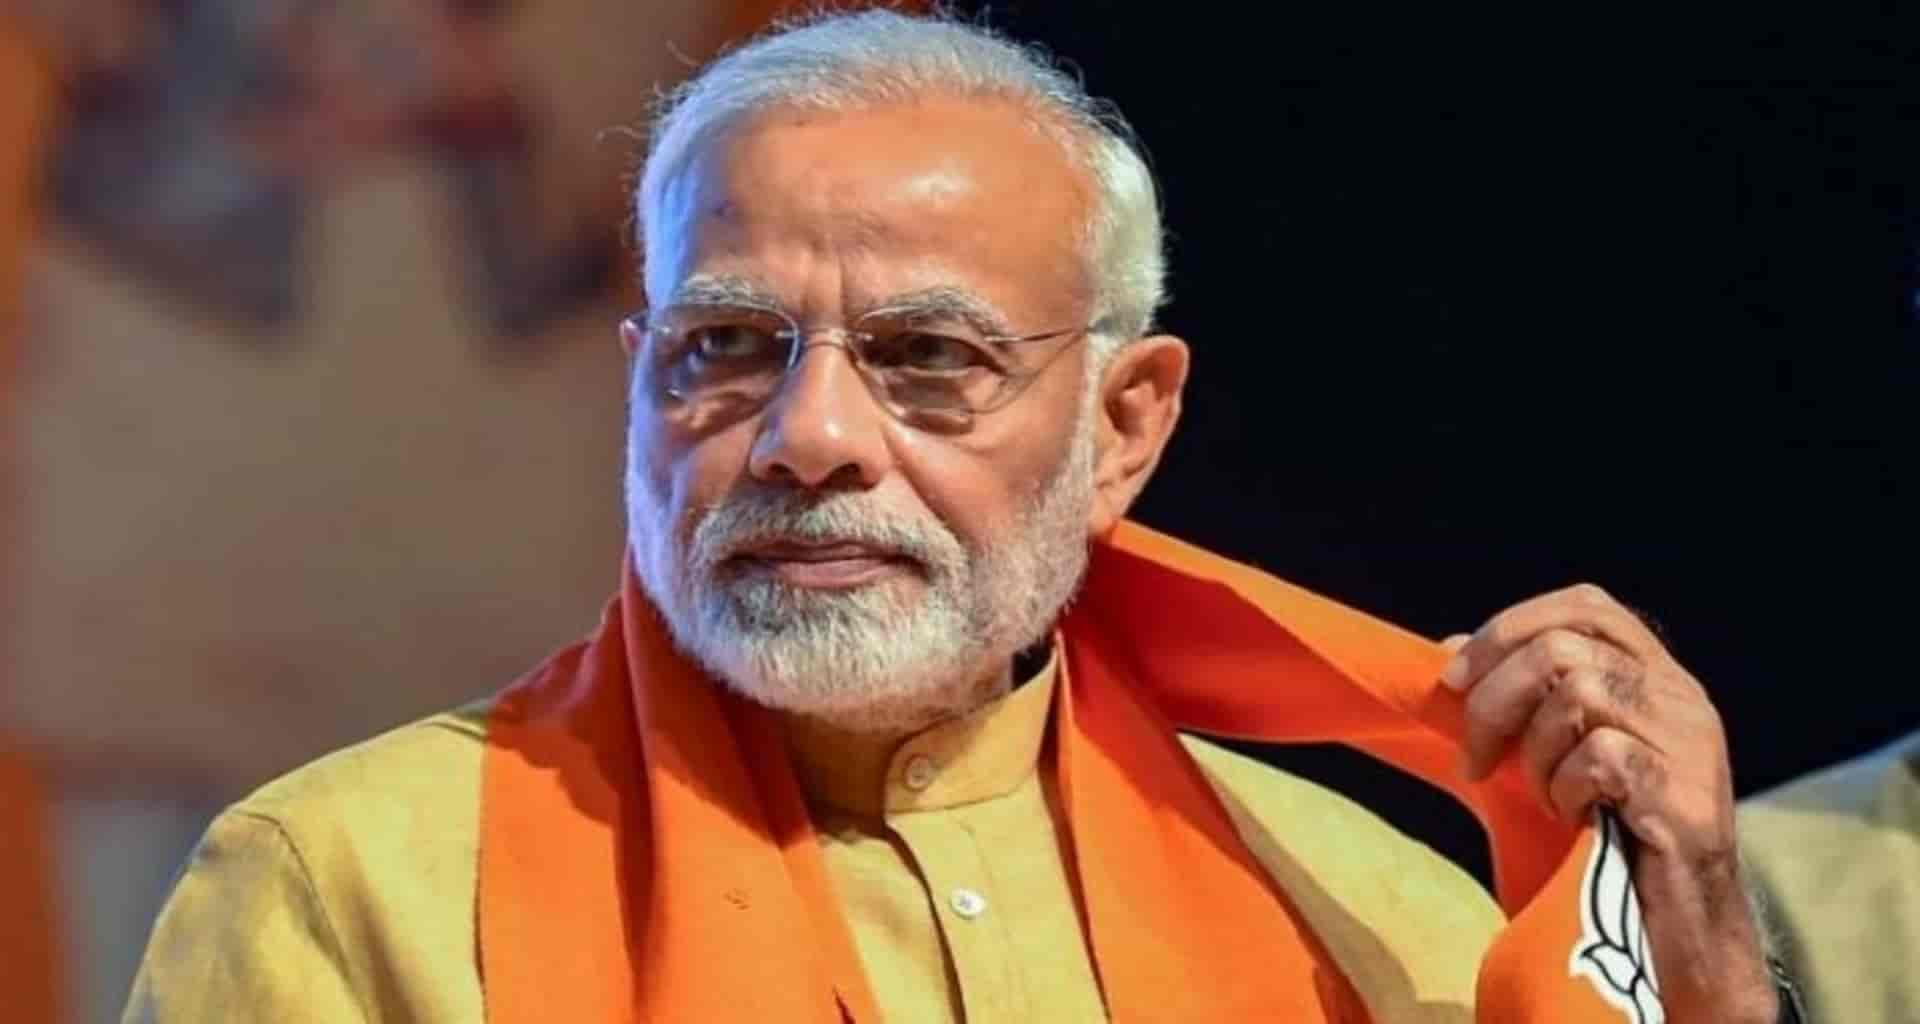 The Modi government announced a one country one exam for students